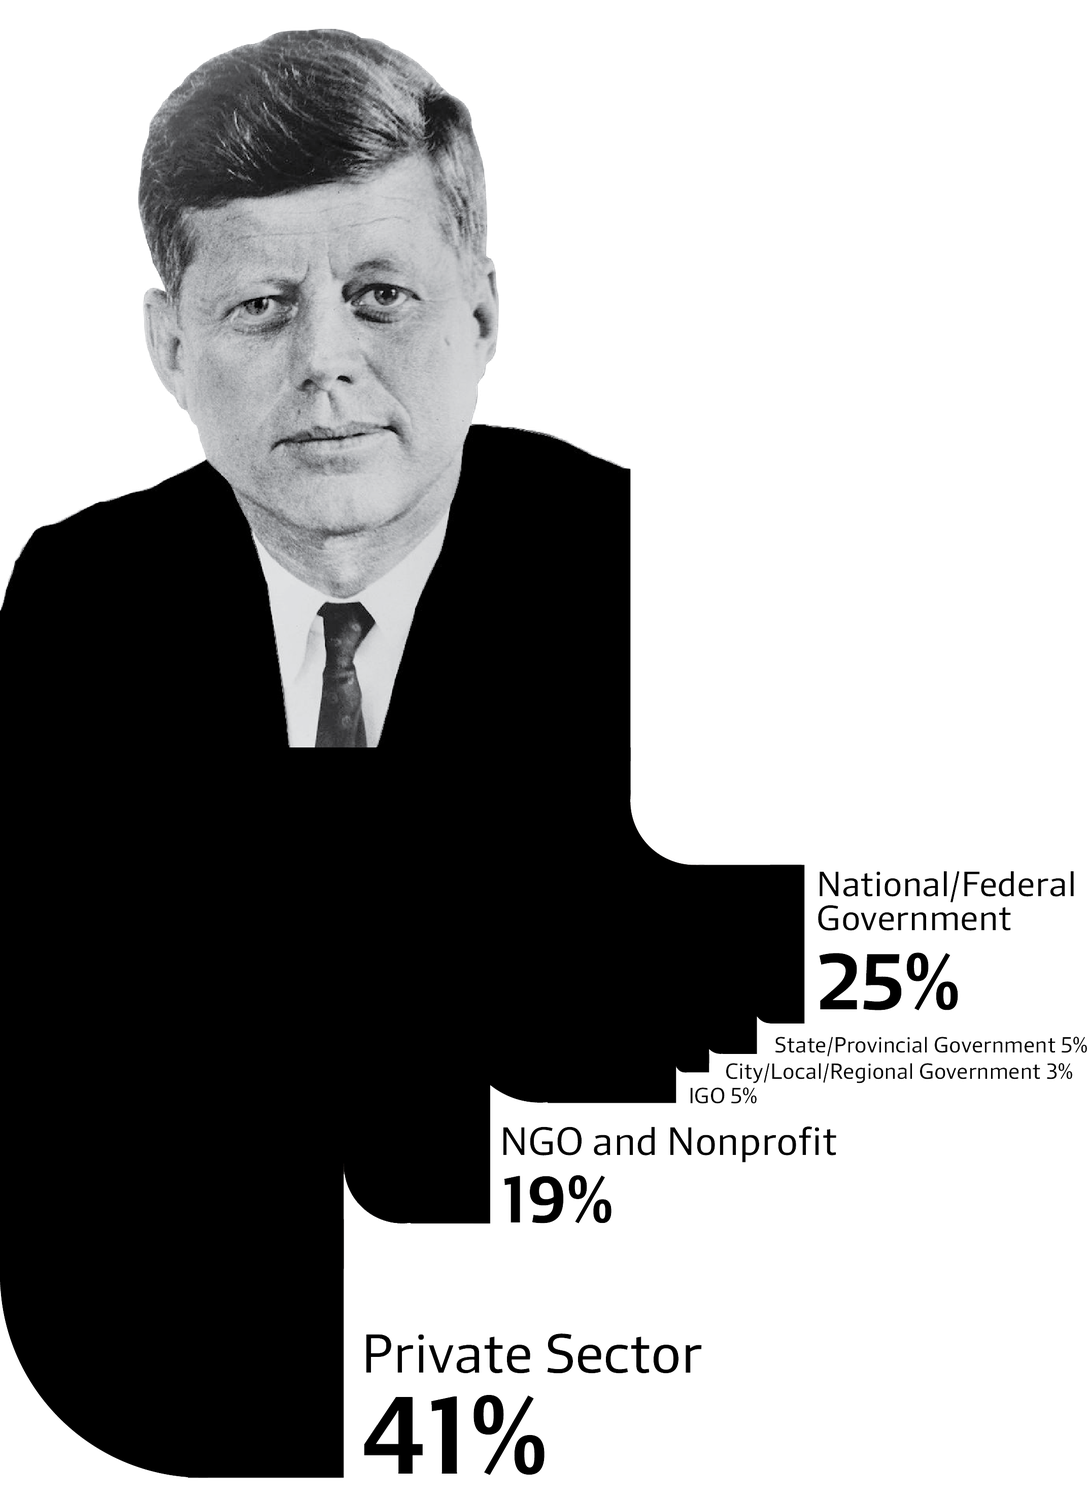 Kennedy graphic